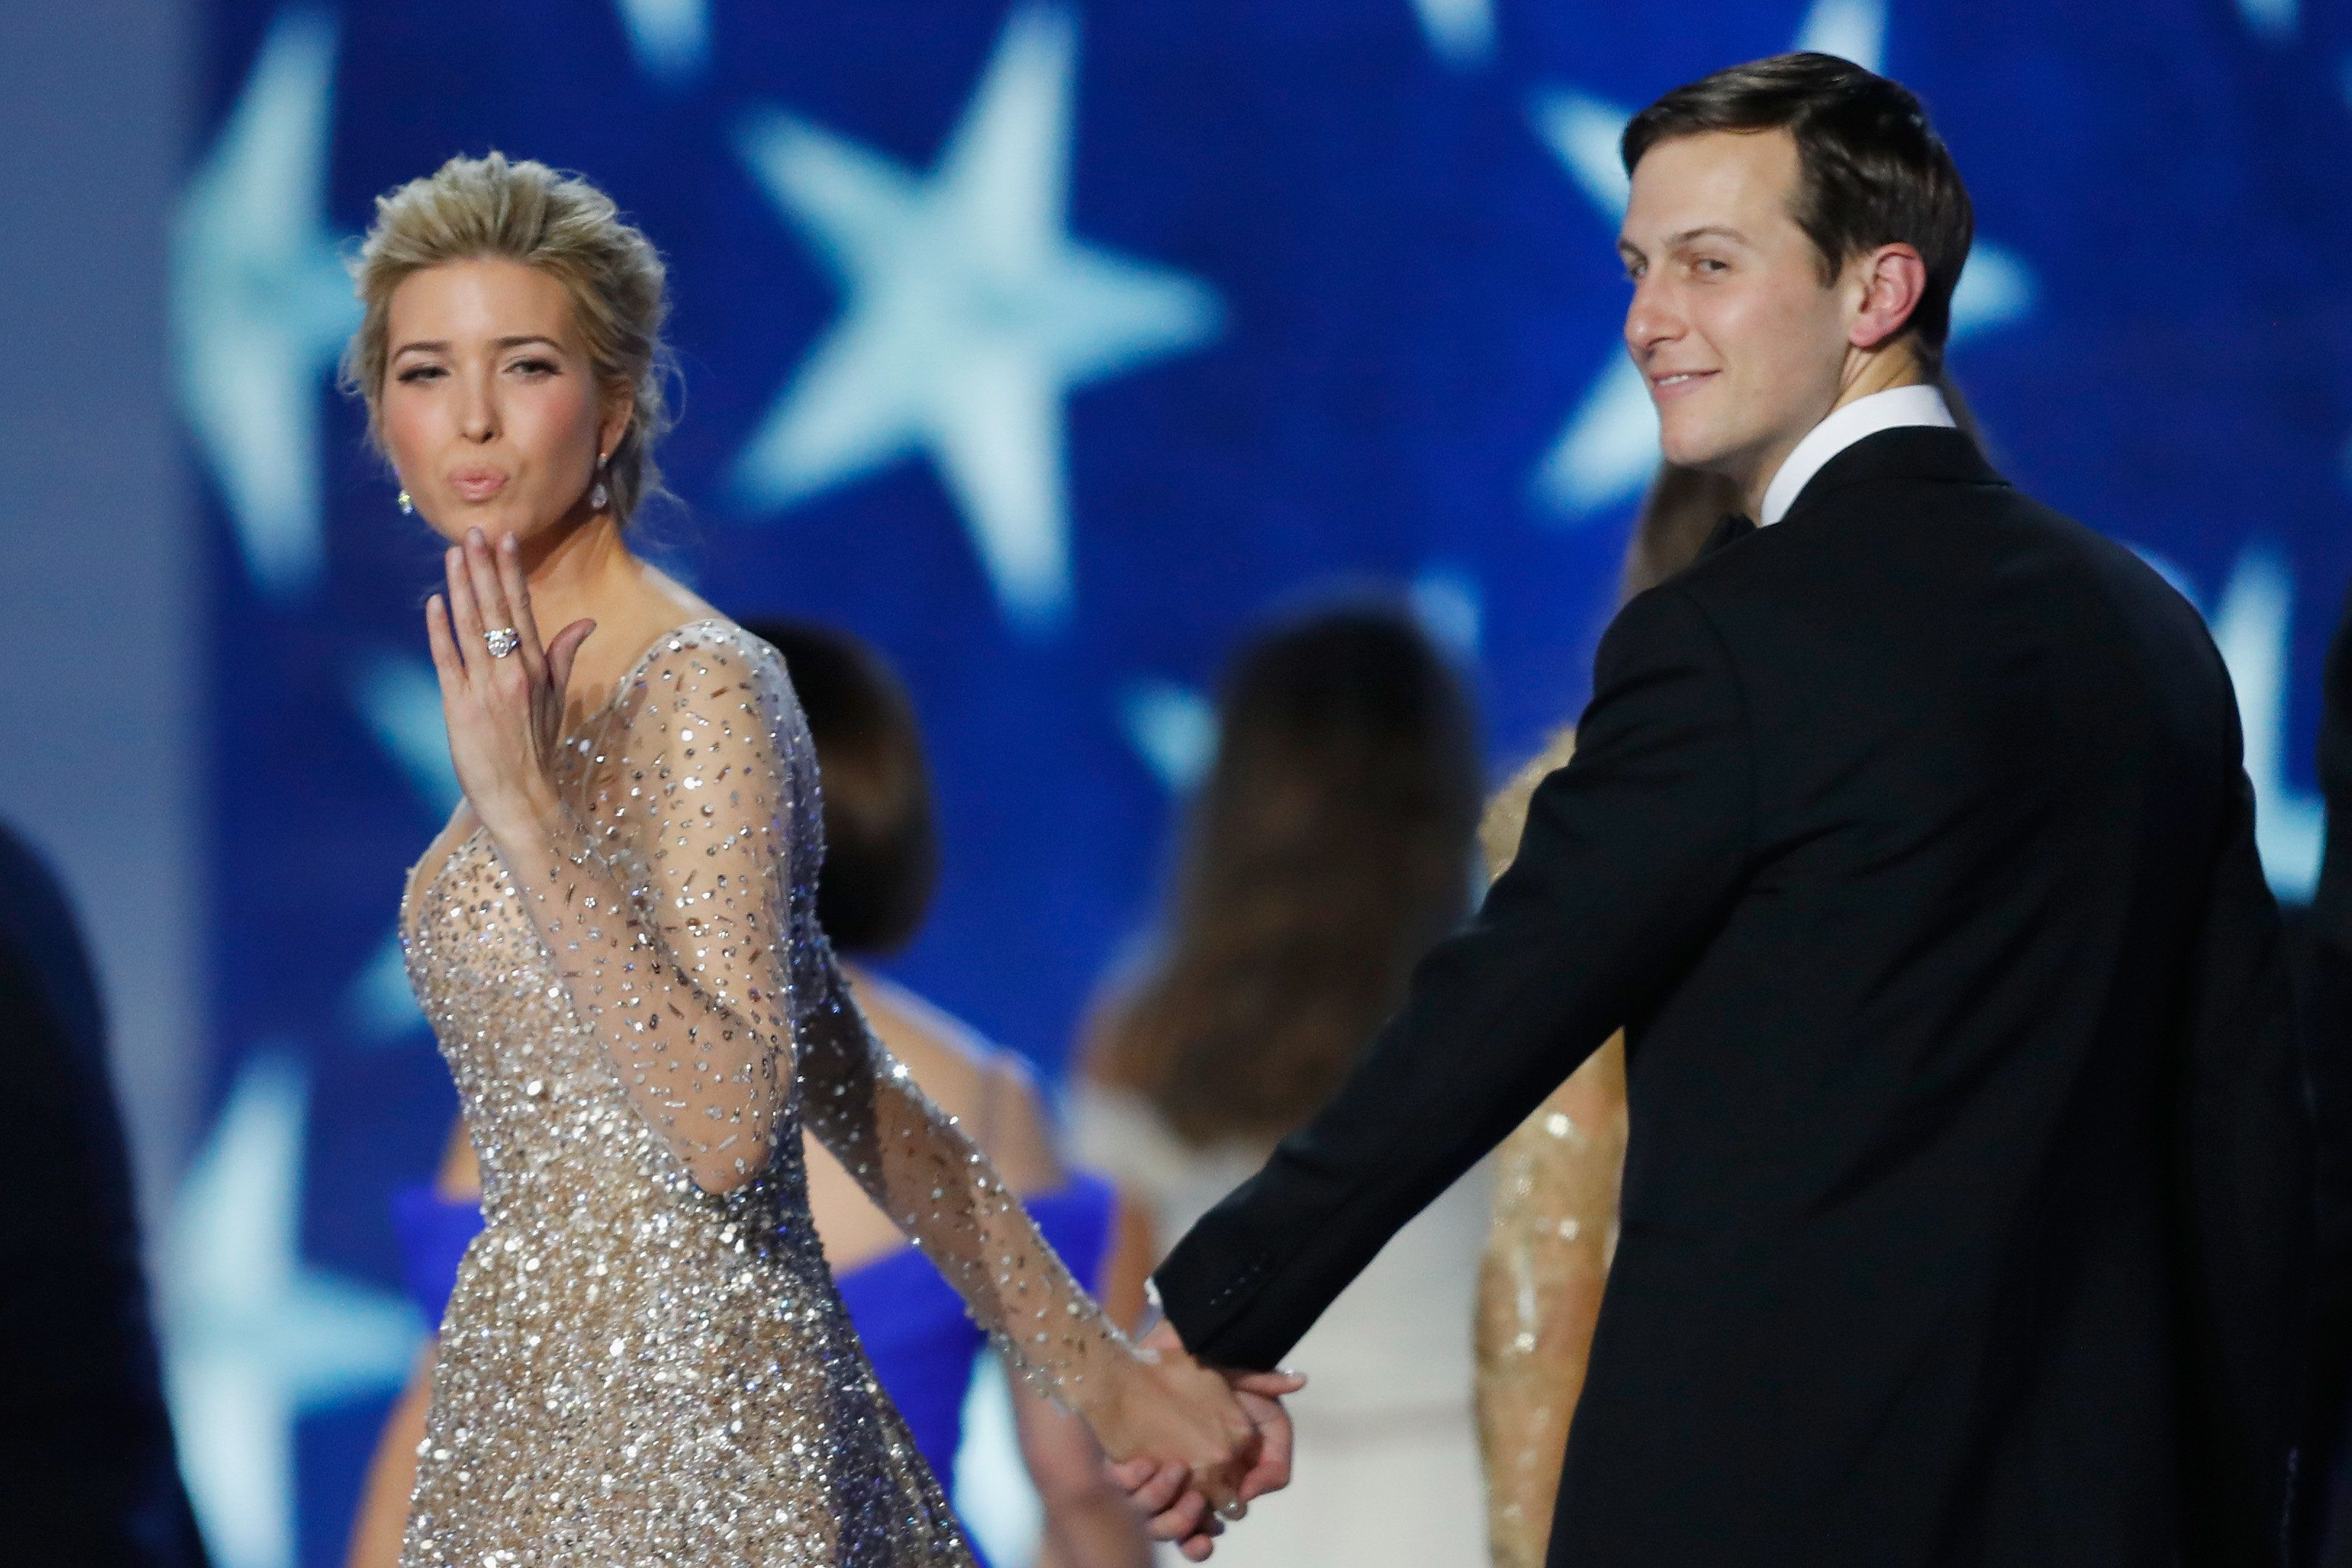 WASHINGTON, DC - JANUARY 20:  Ivanka Trump and husband Jared Kushner dance at the Freedom Inaugural Ball at the Washington Convention Center January 20, 2017 in Washington, D.C.  President Trump was sworn today as the 45th U.S. President.  (Photo by Aaron P. Bernstein/Getty Images)